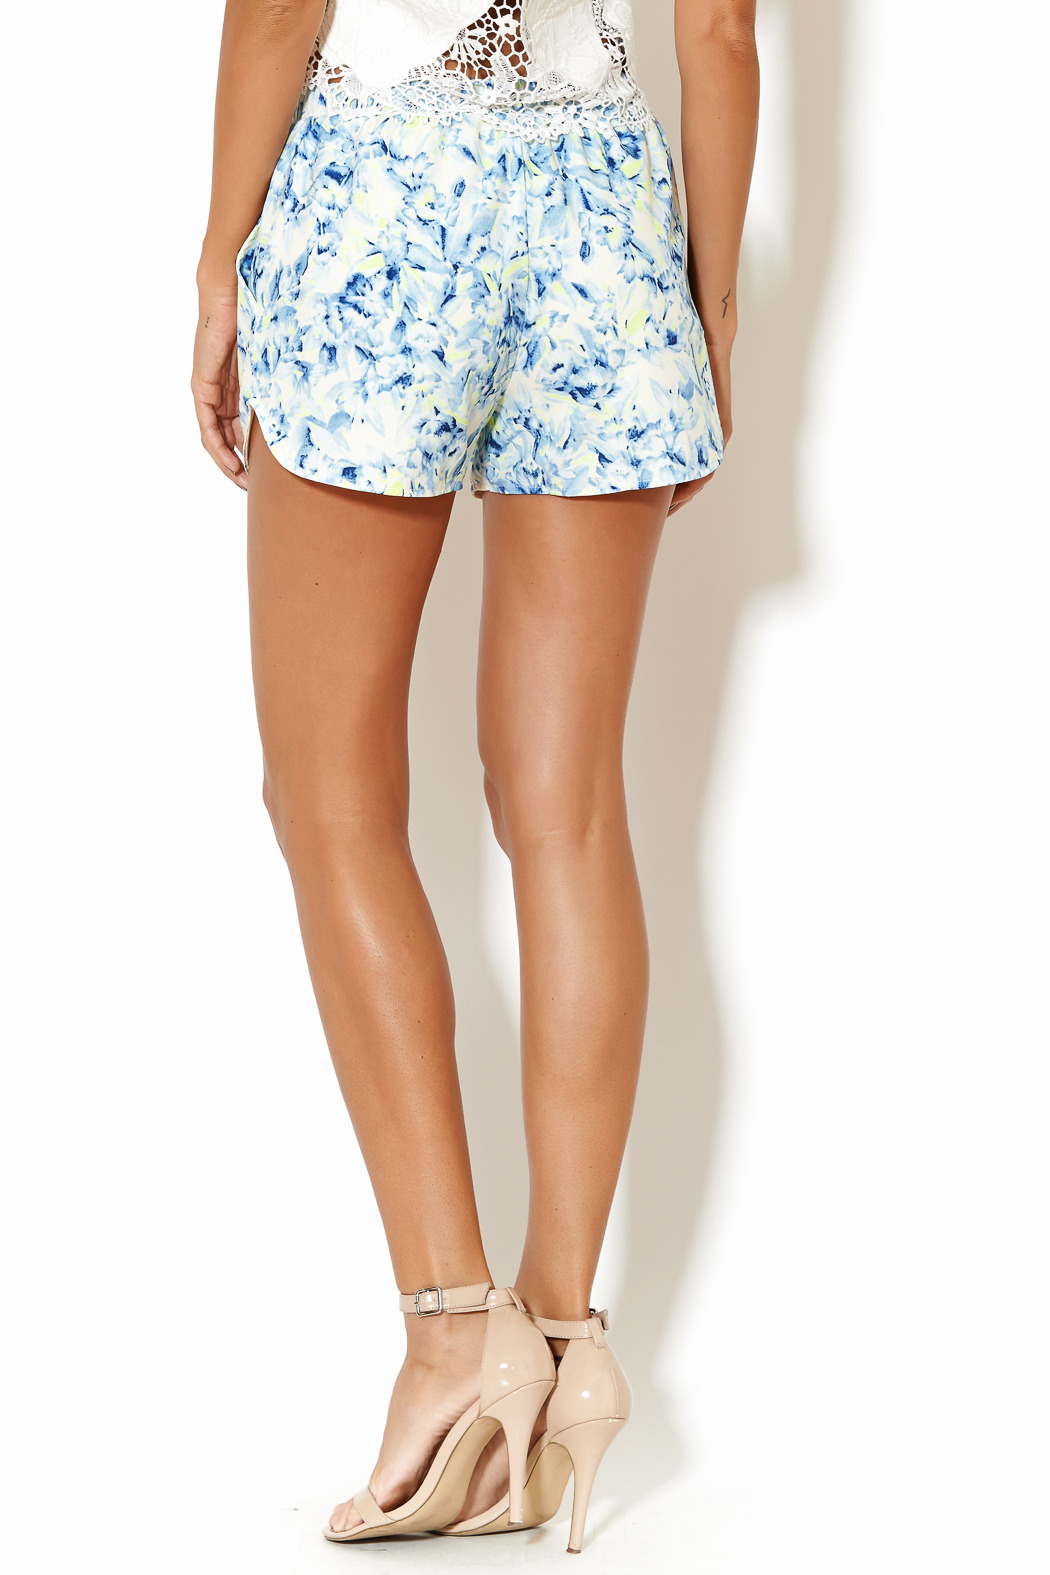 Lovers + Friends Adore Shorts - Back Cropped Image